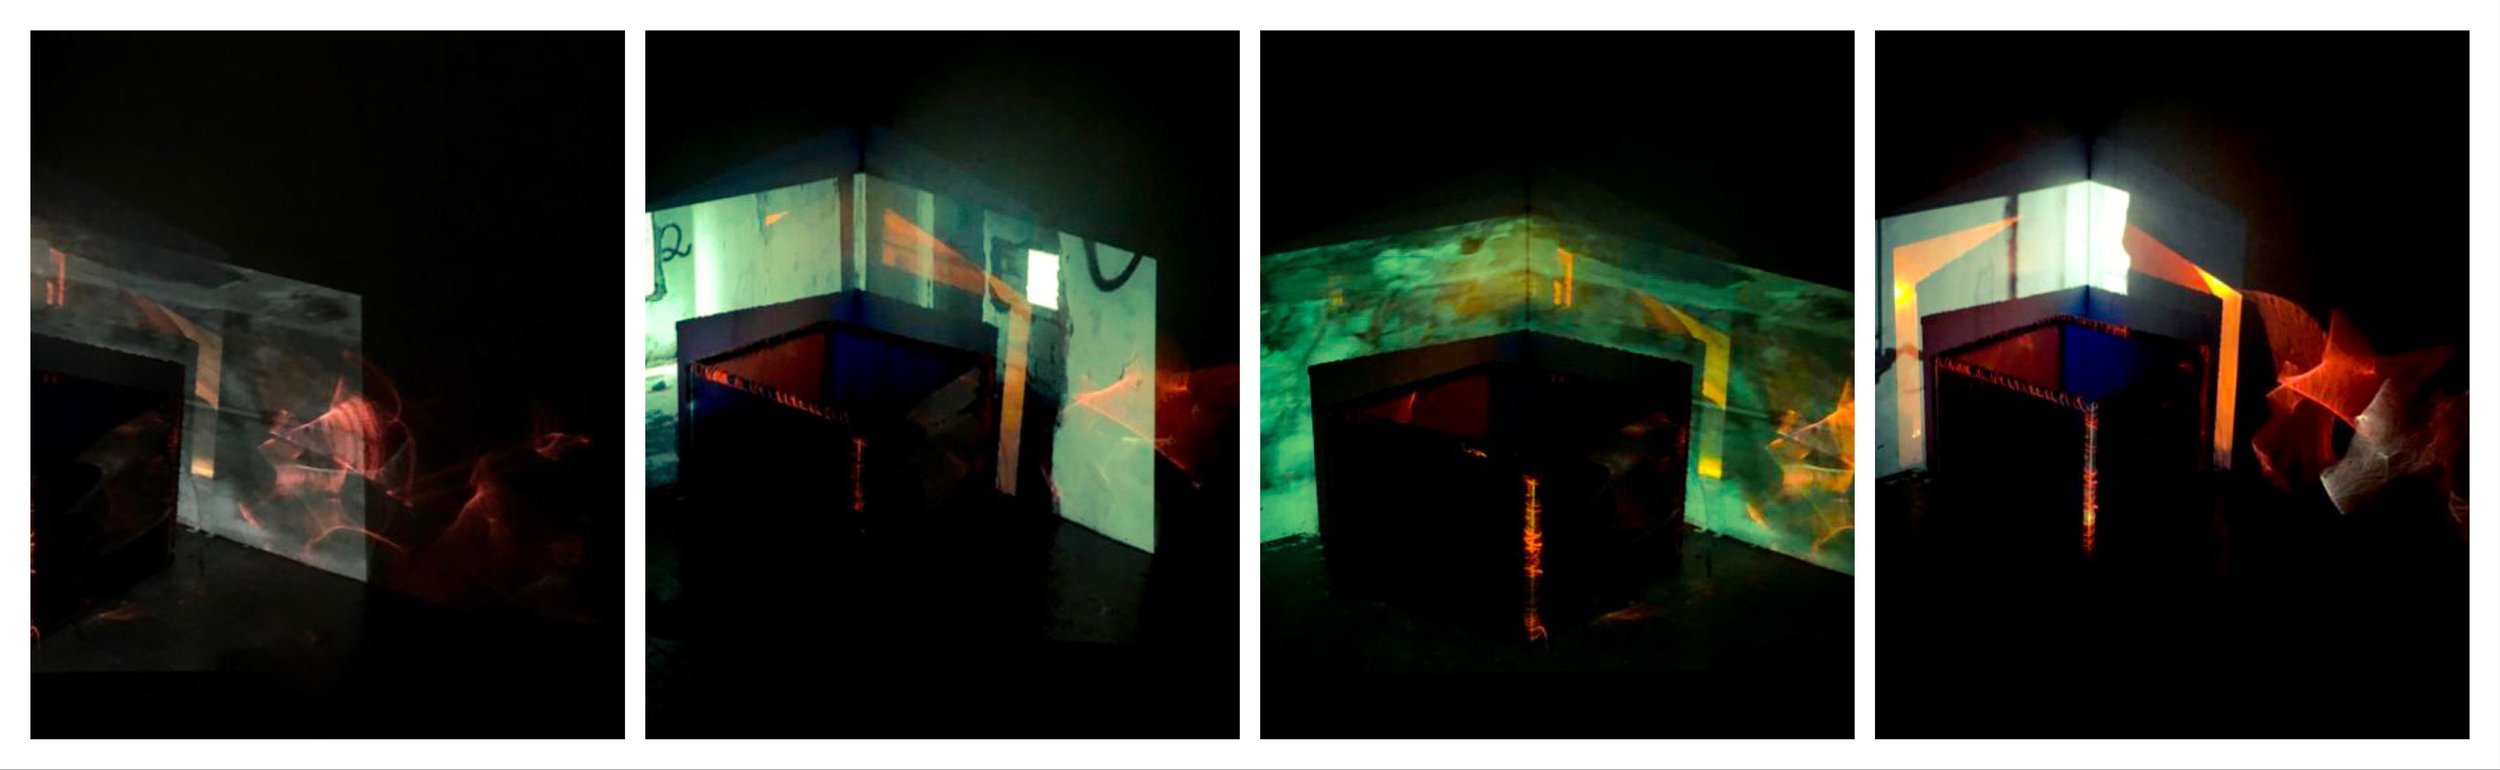 "Fire. Steel, colored film gels, yarn, video projection of B/W edited footage that I shot in the West Bank. May 2016.  28"" H 26"" W 26"""